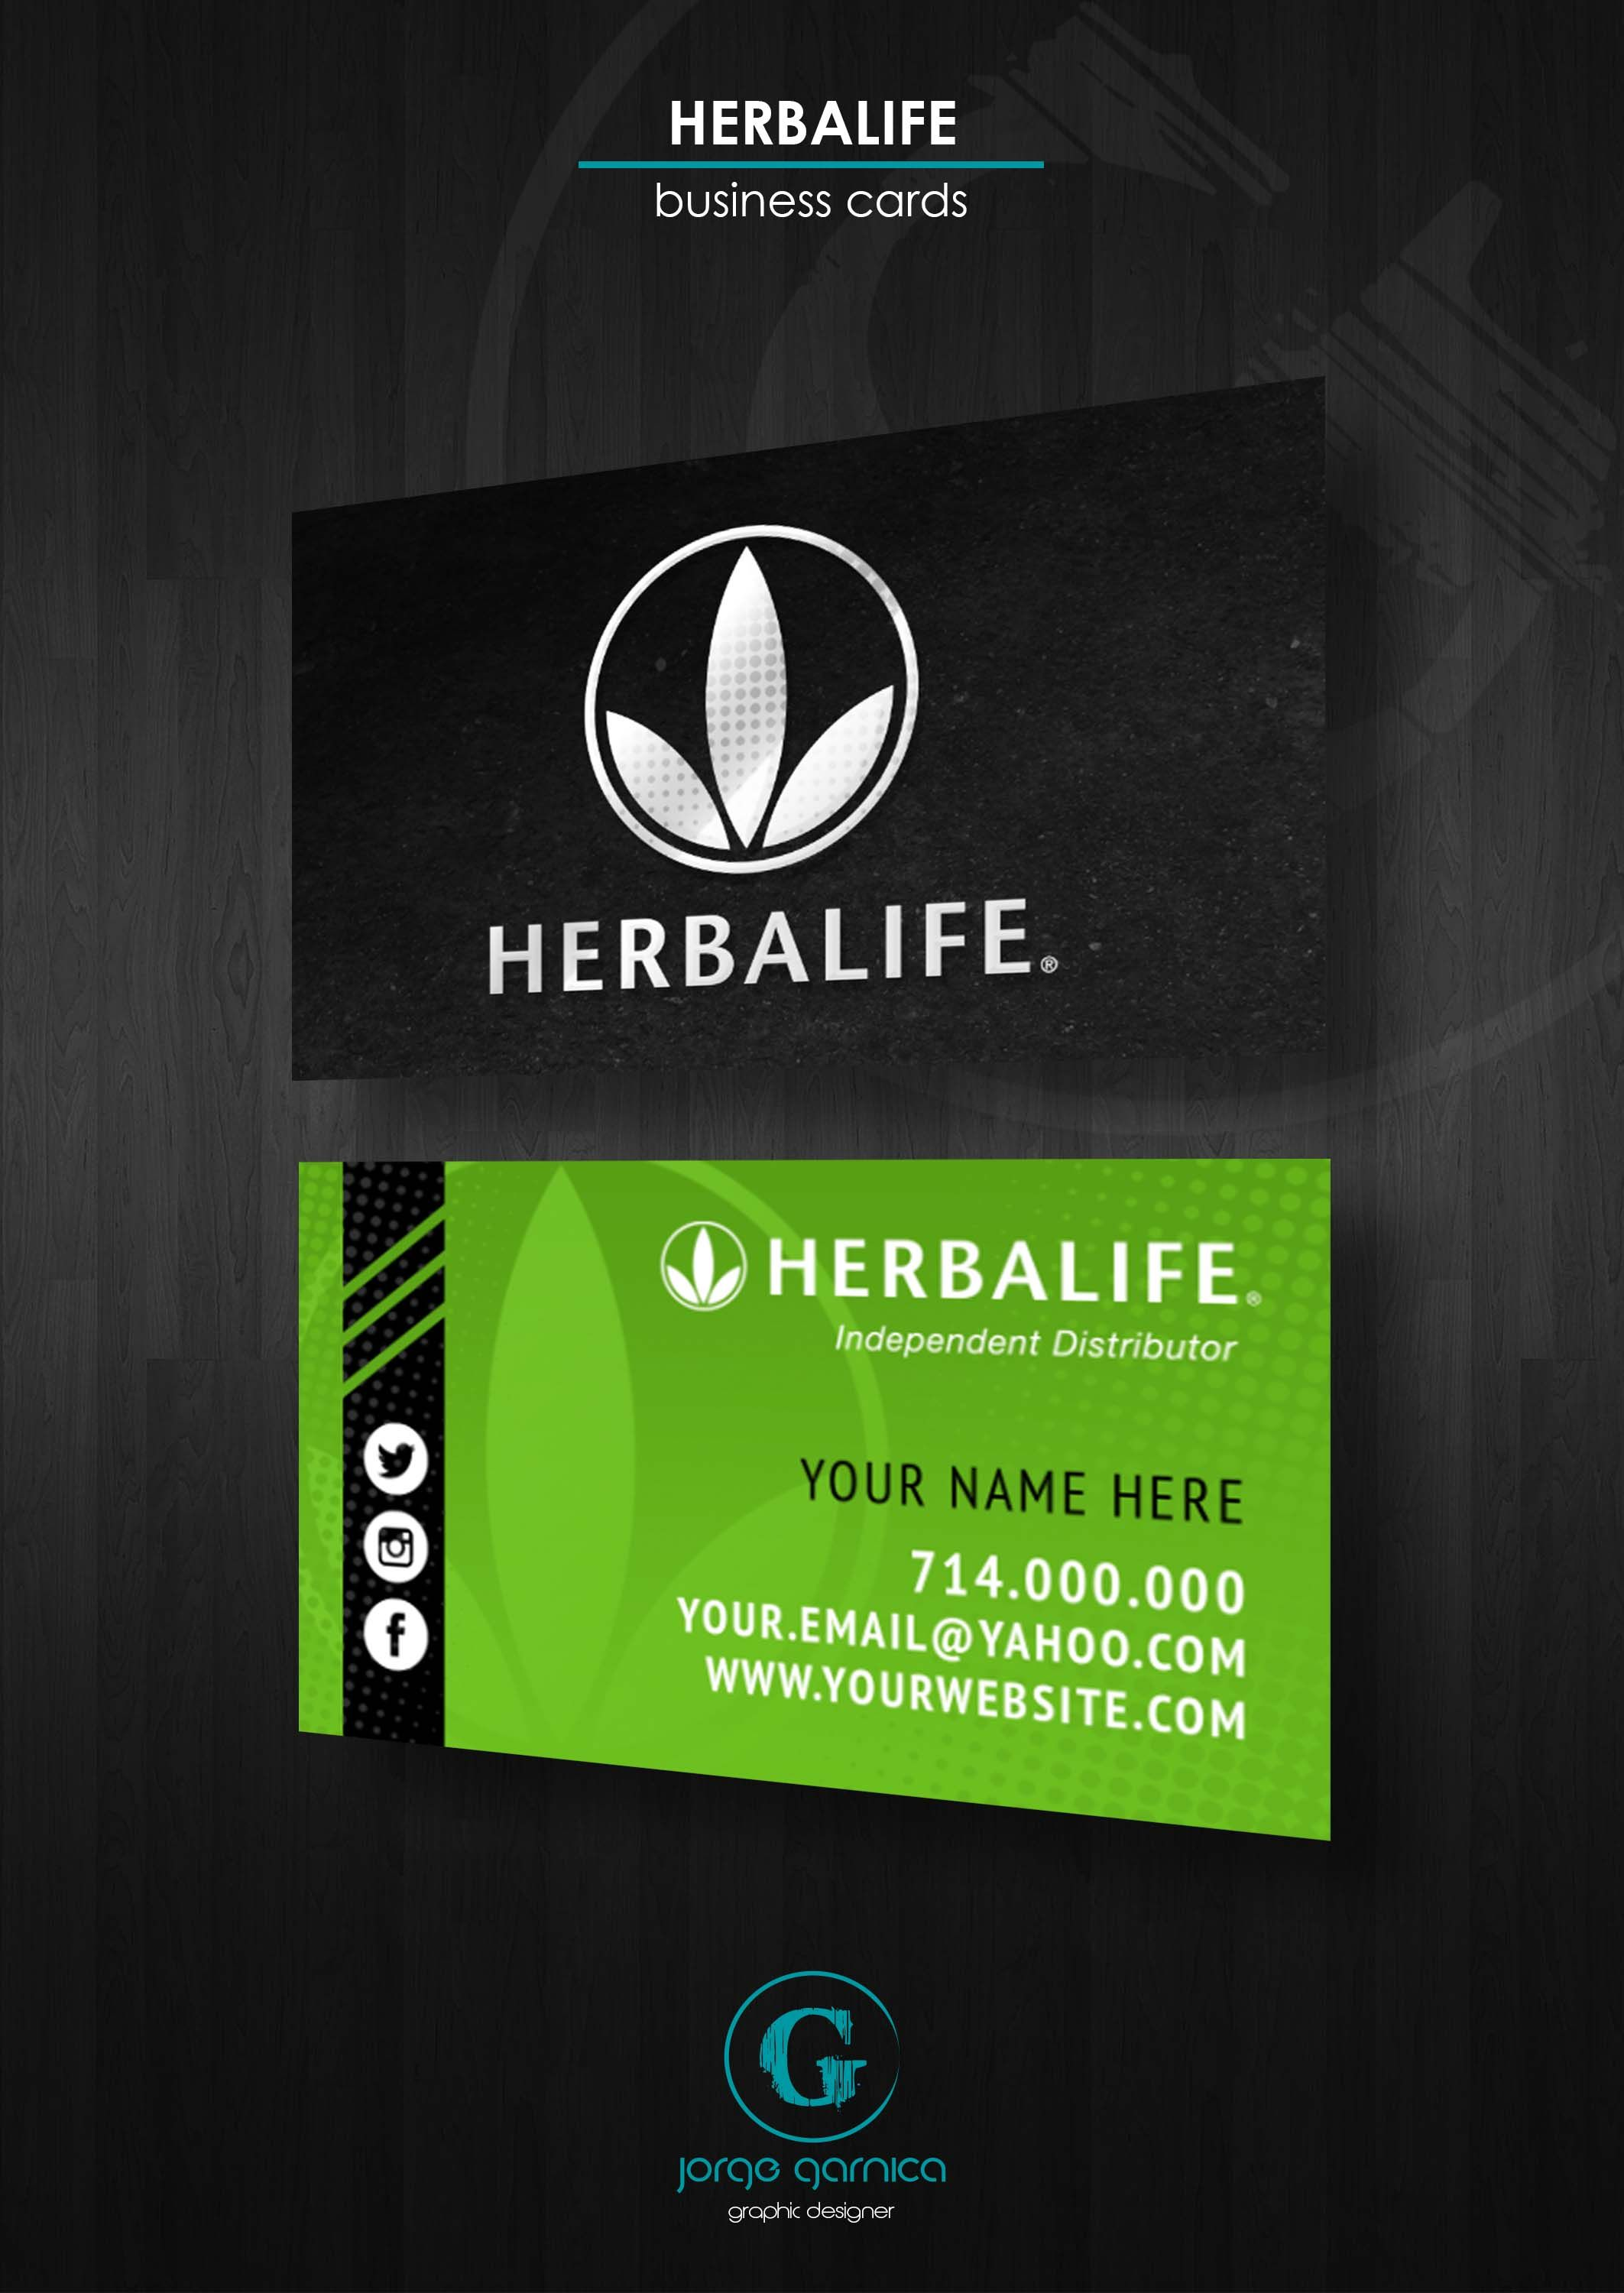 Herbalife business card design template print pinterest herbalife business card design template flashek Image collections